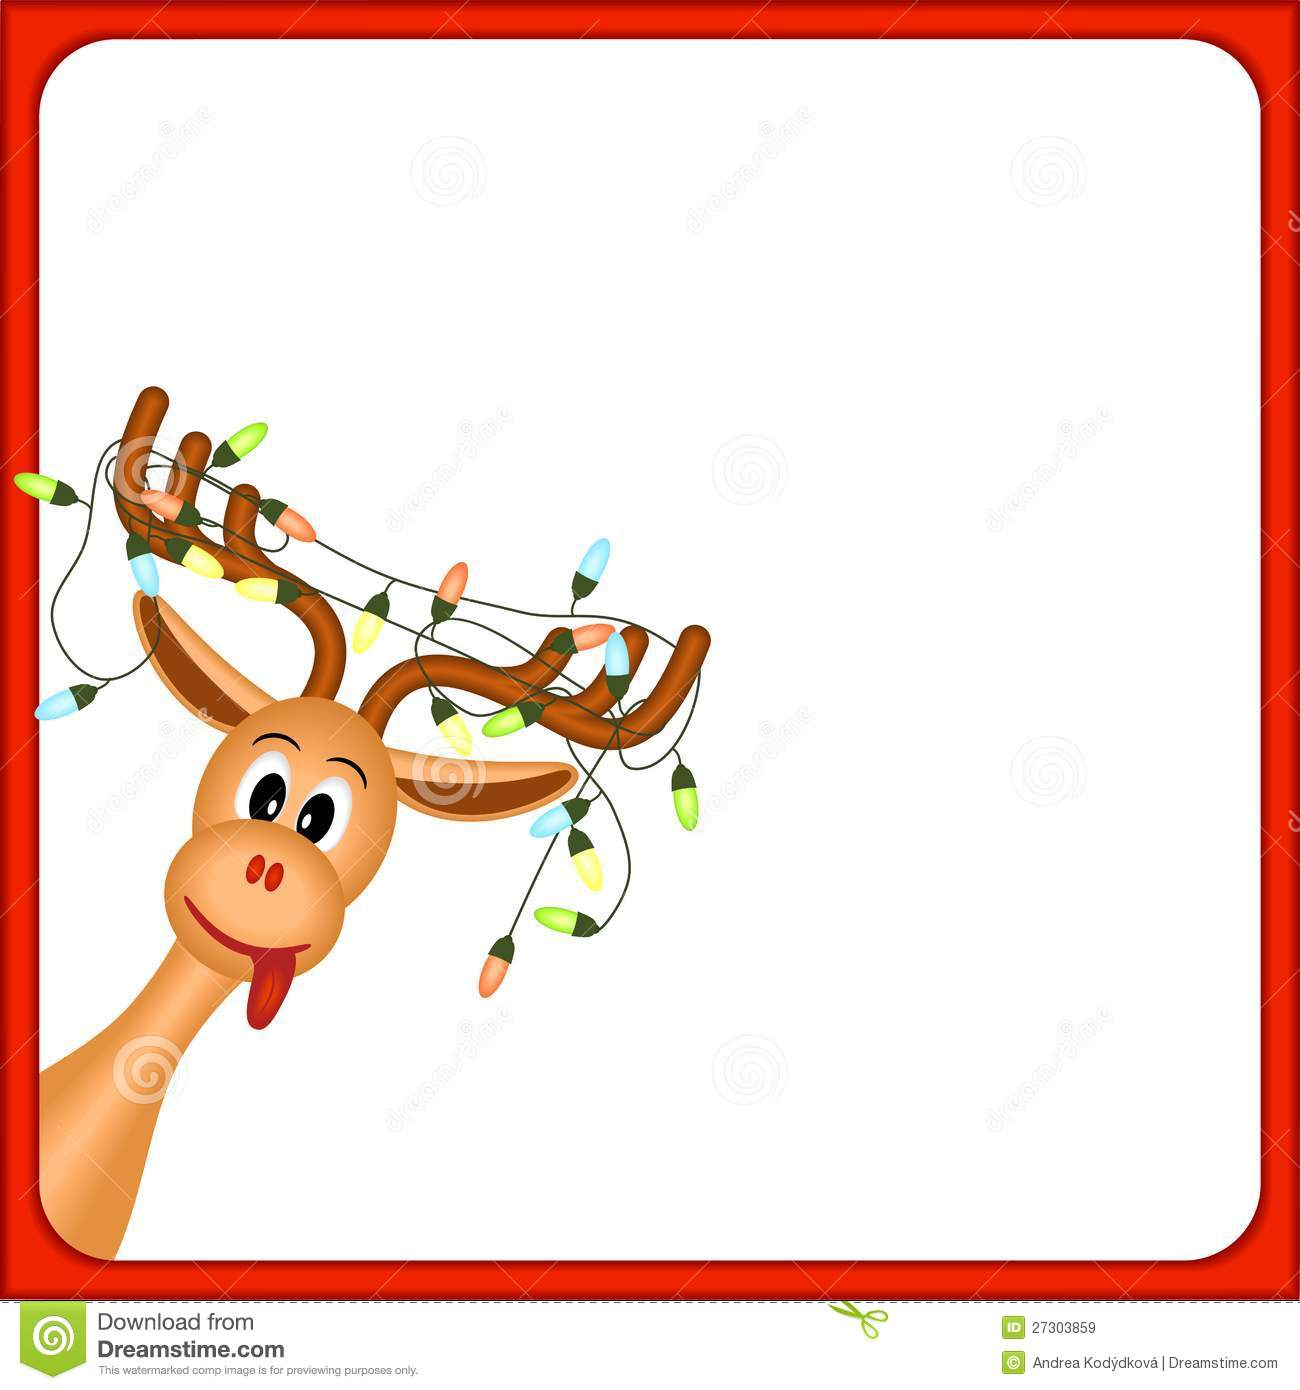 Christmas Reindeer With Electric Lights In Antlers Royalty Free Stock ...